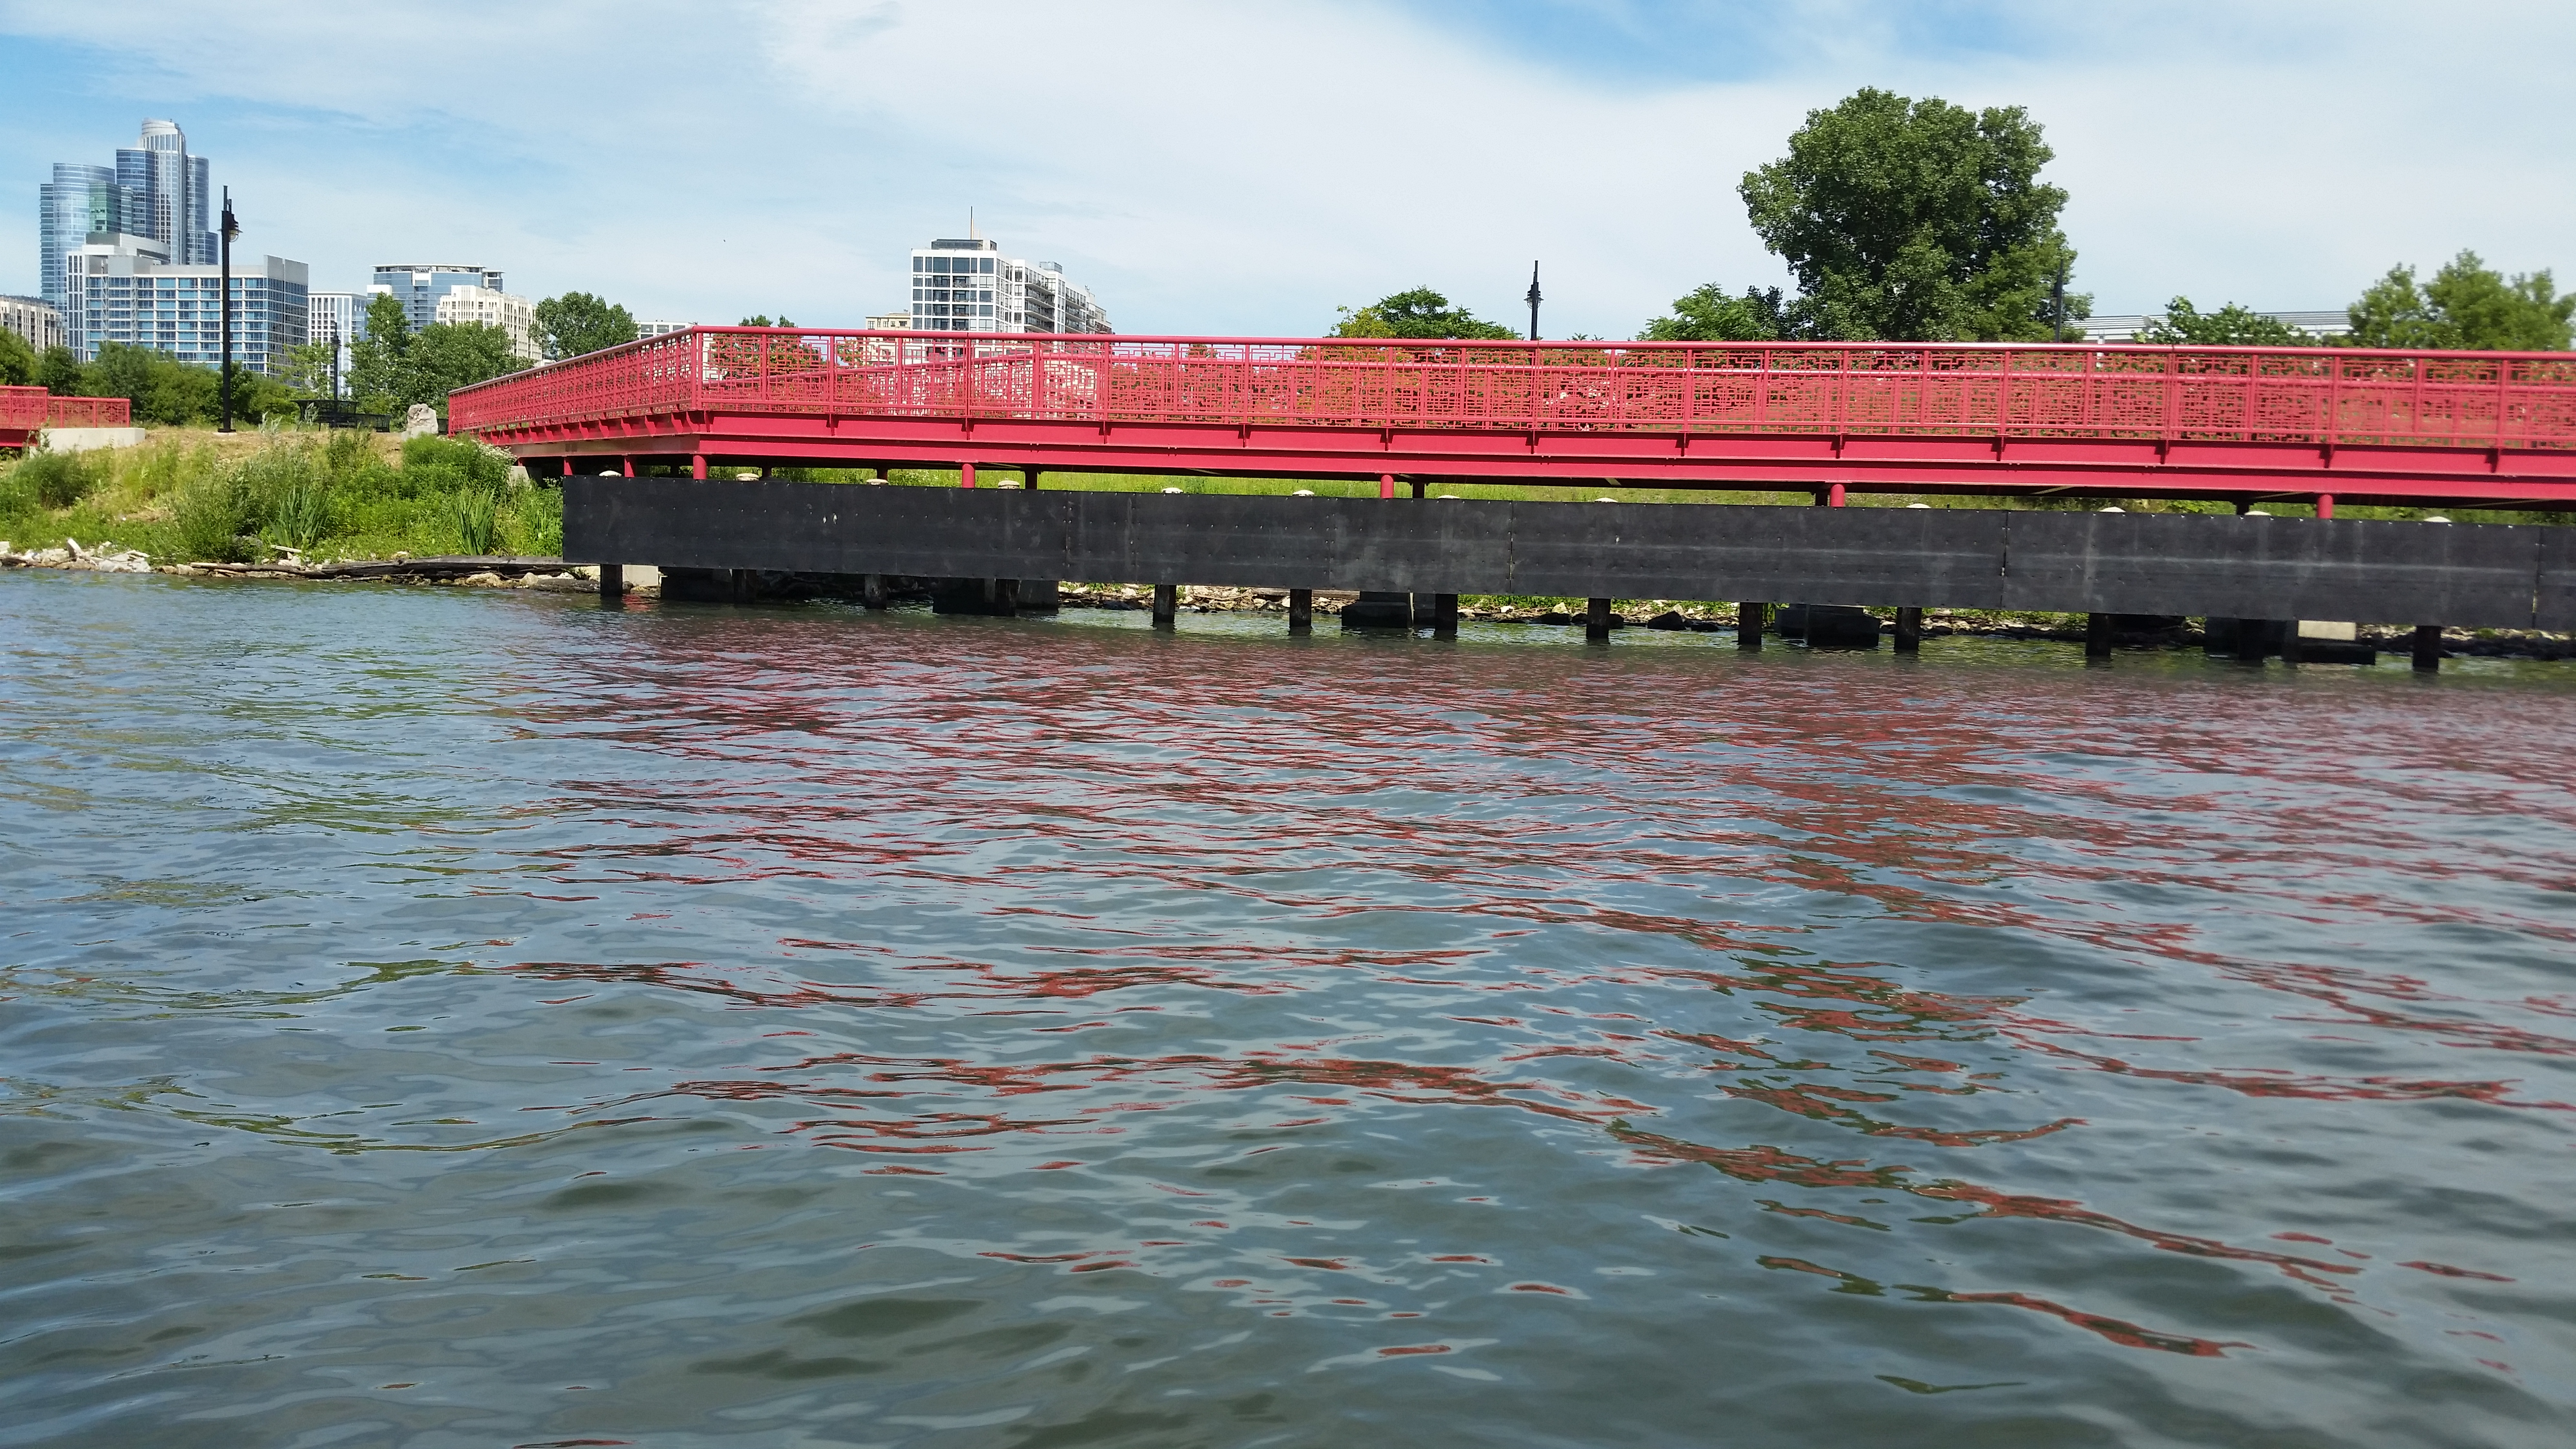 I love the way this bright red bridge reflects in the water.